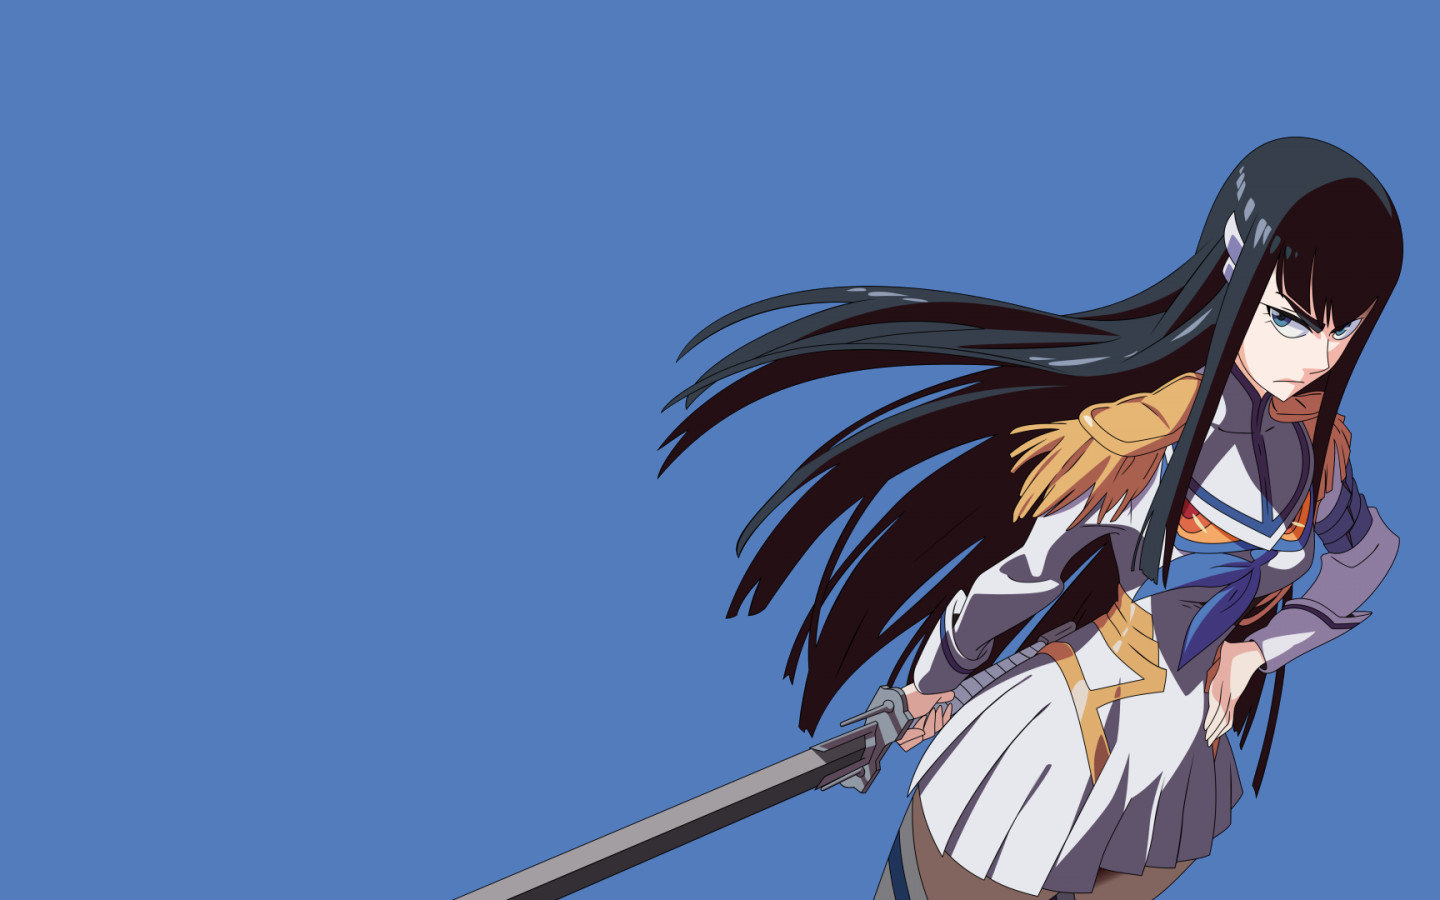 Awesome Kill La Kill free wallpaper ID:118961 for hd 1440x900 desktop